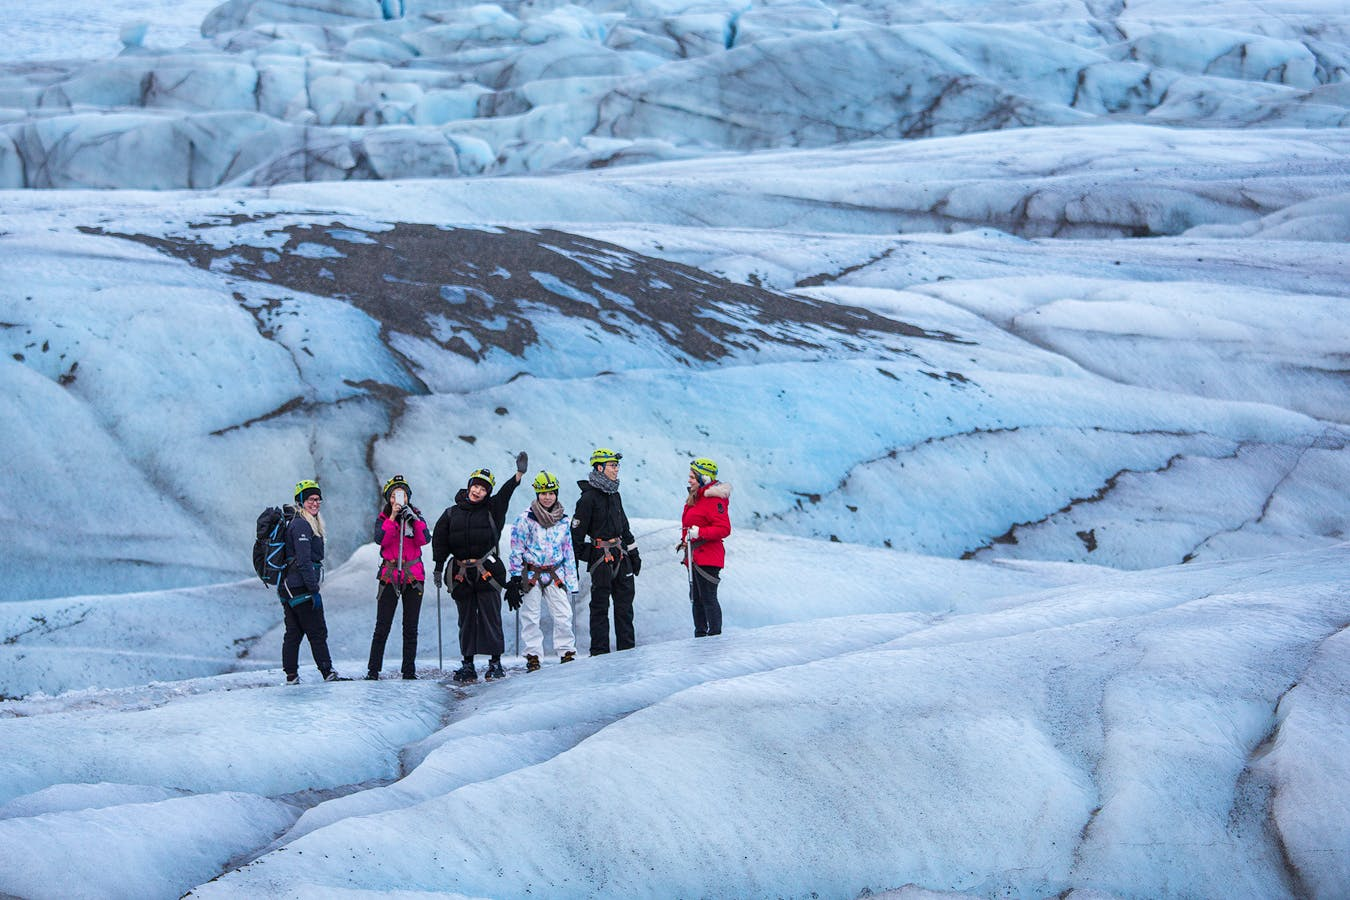 Your glacier hike might also include a spot of climbing with ice axes.